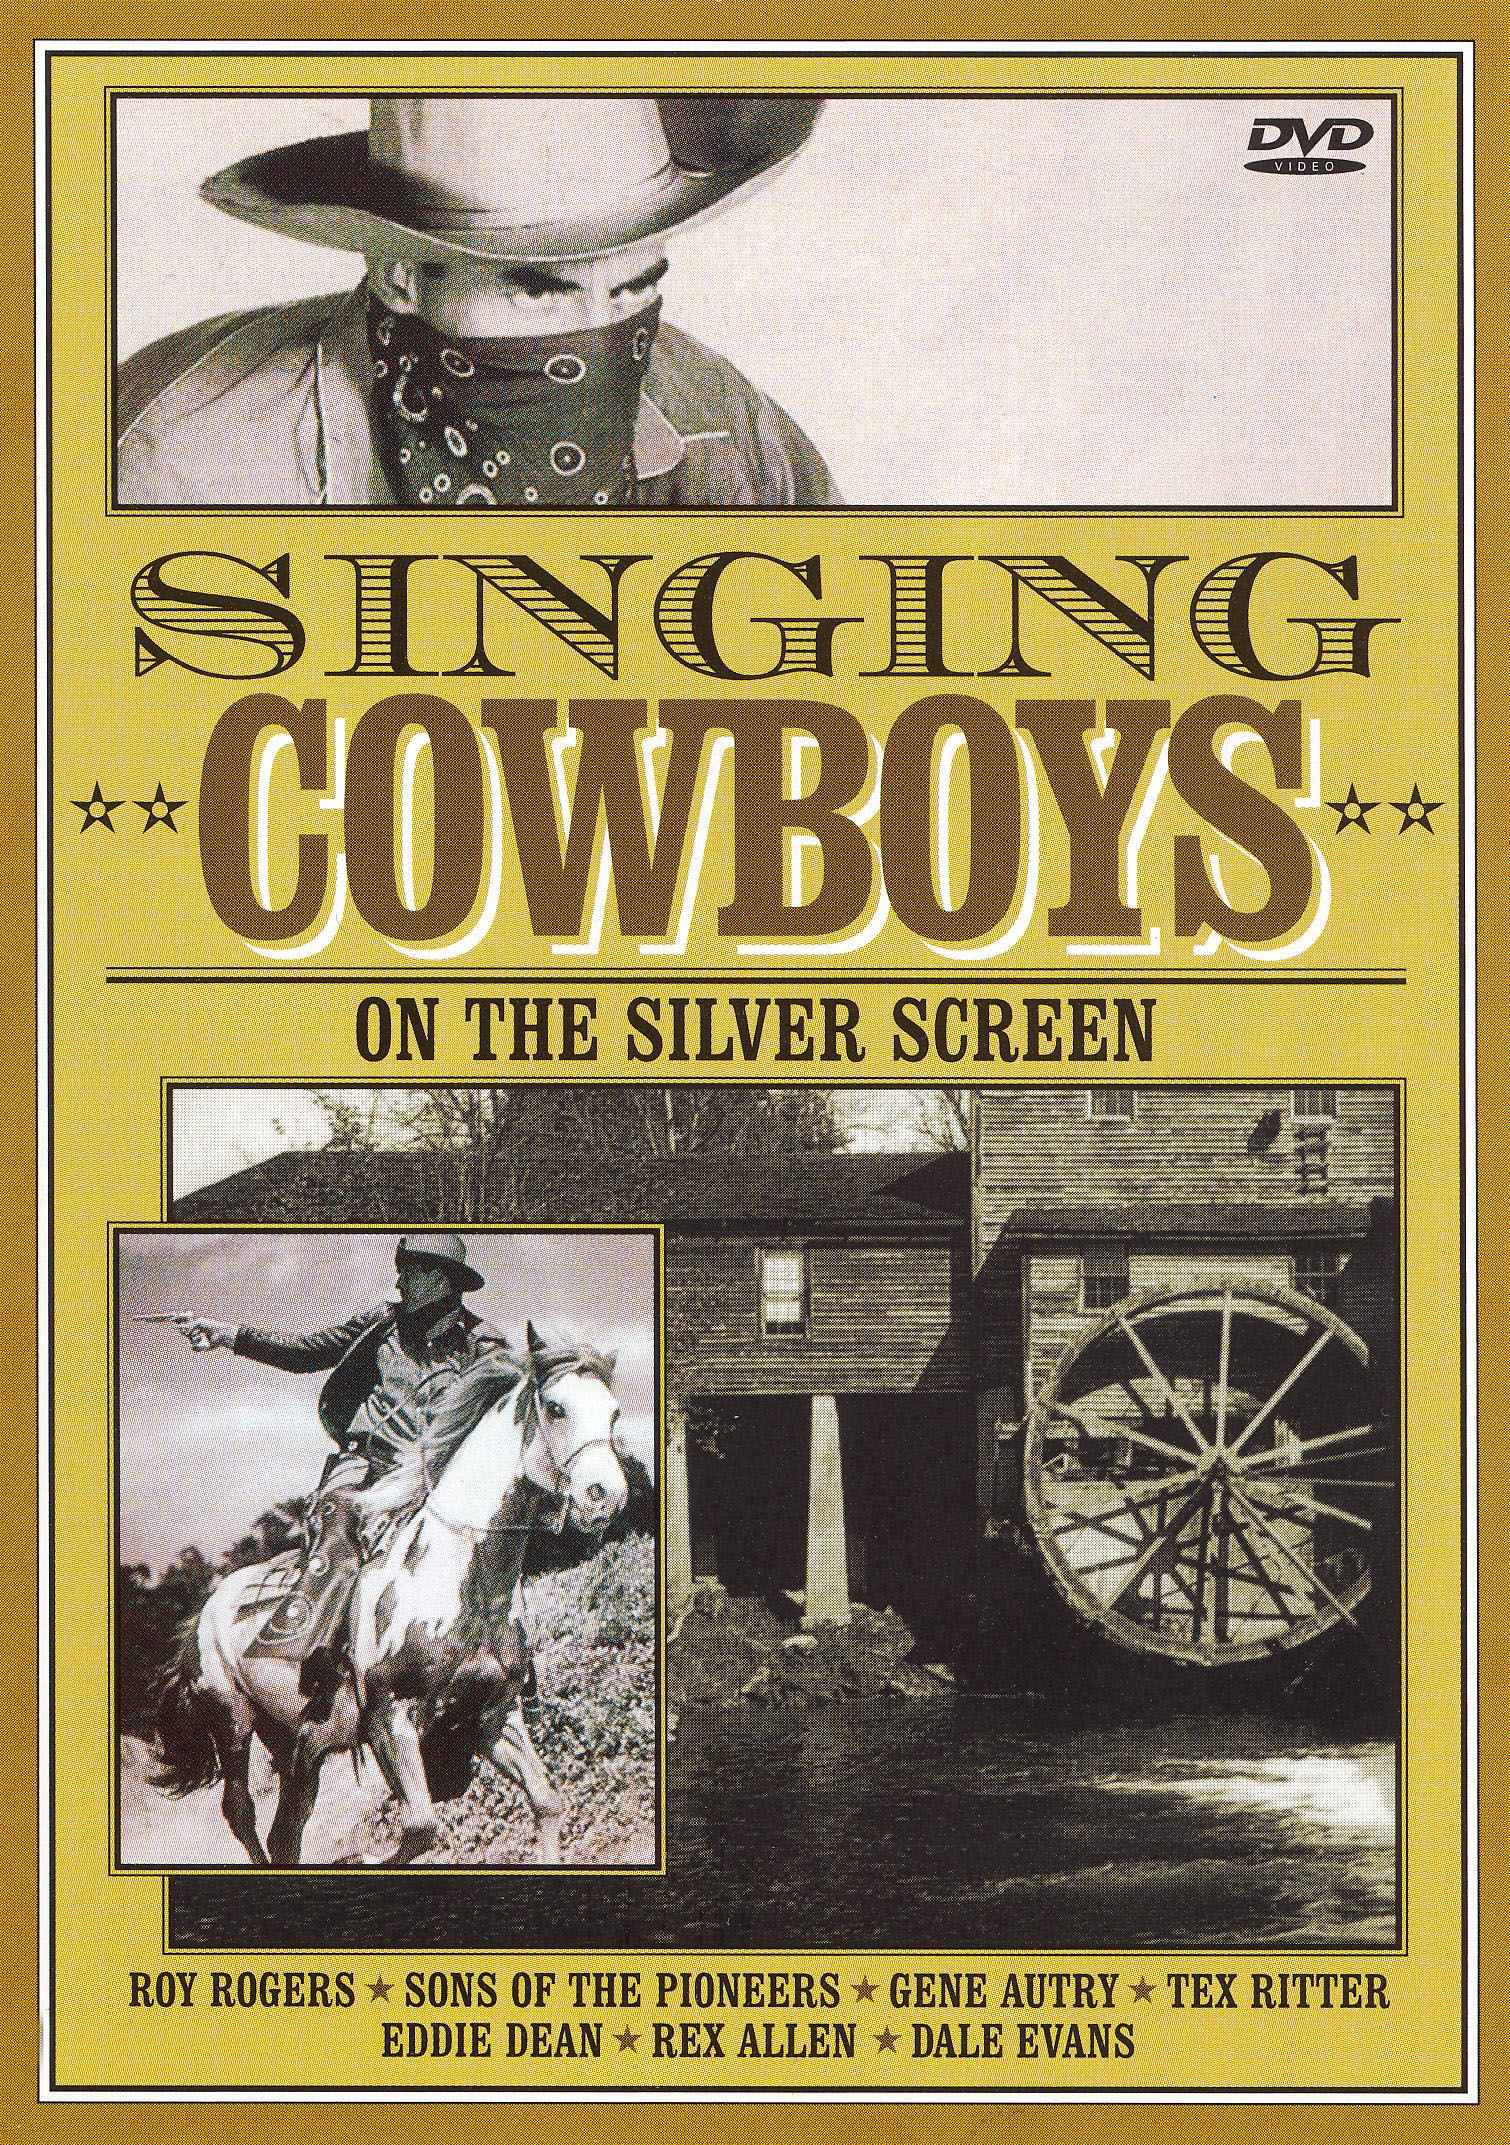 Singing Cowboys on the Silver Screen